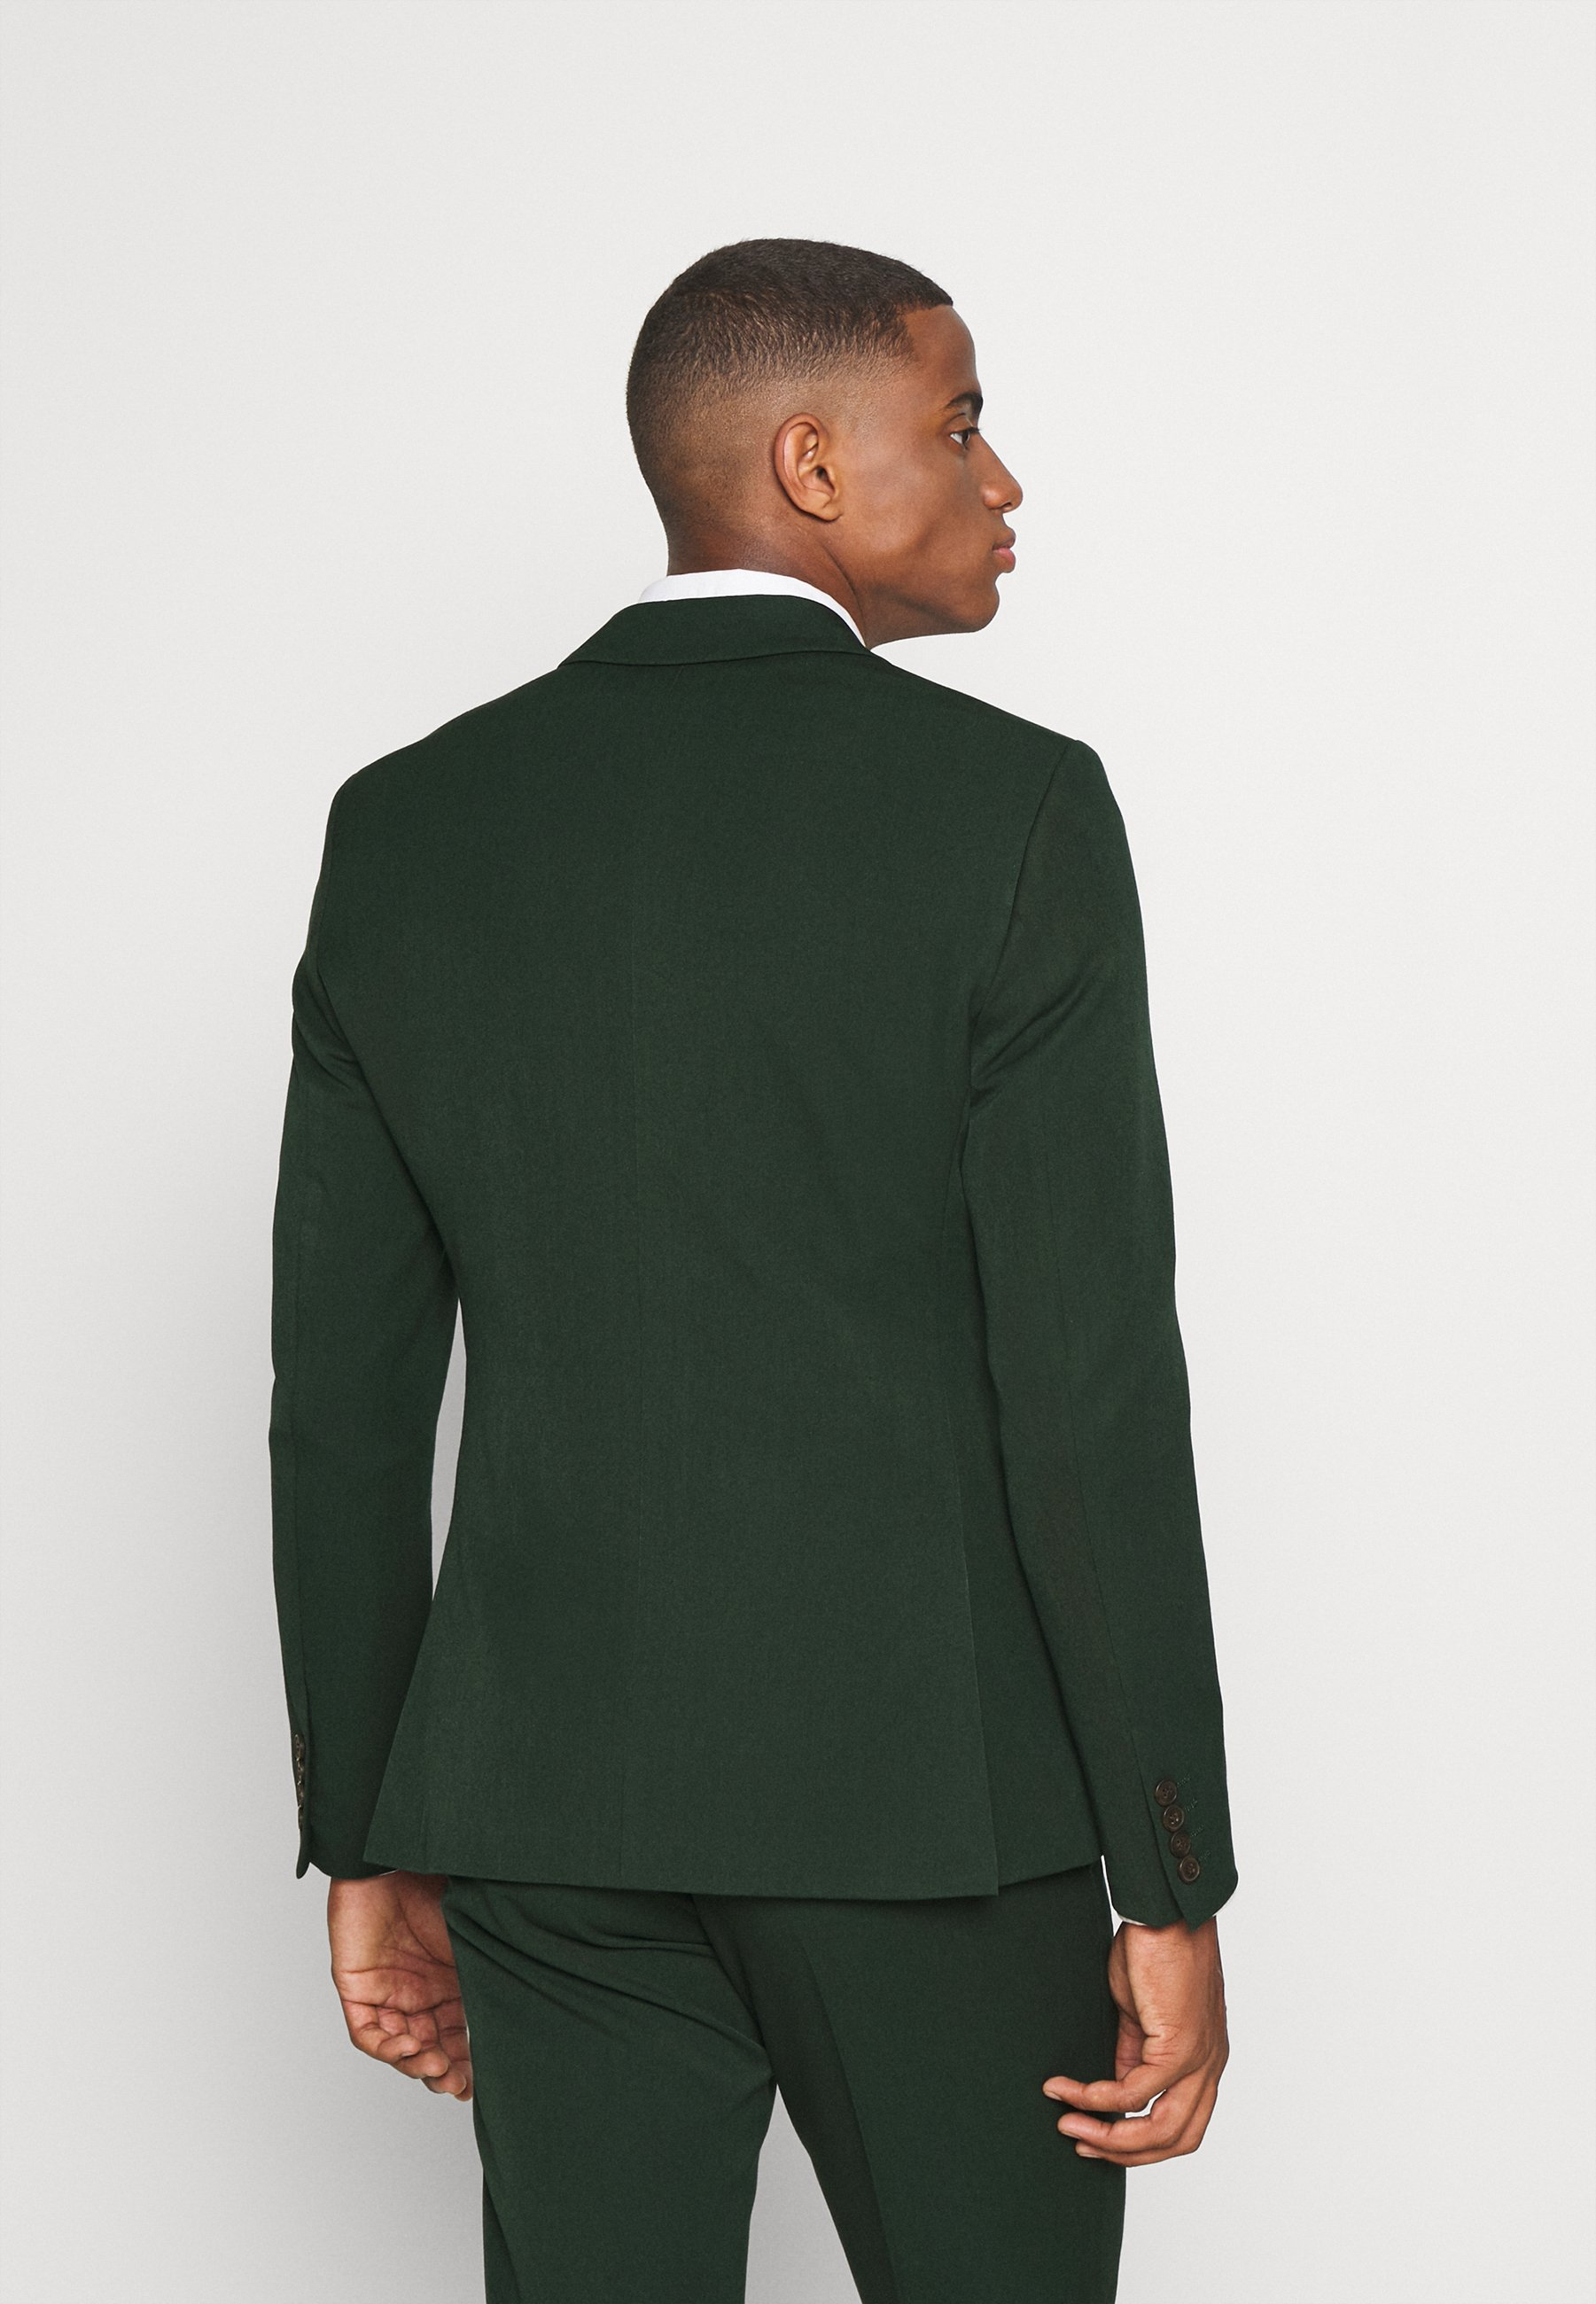 Homme THE FASHION SUIT  - Costume